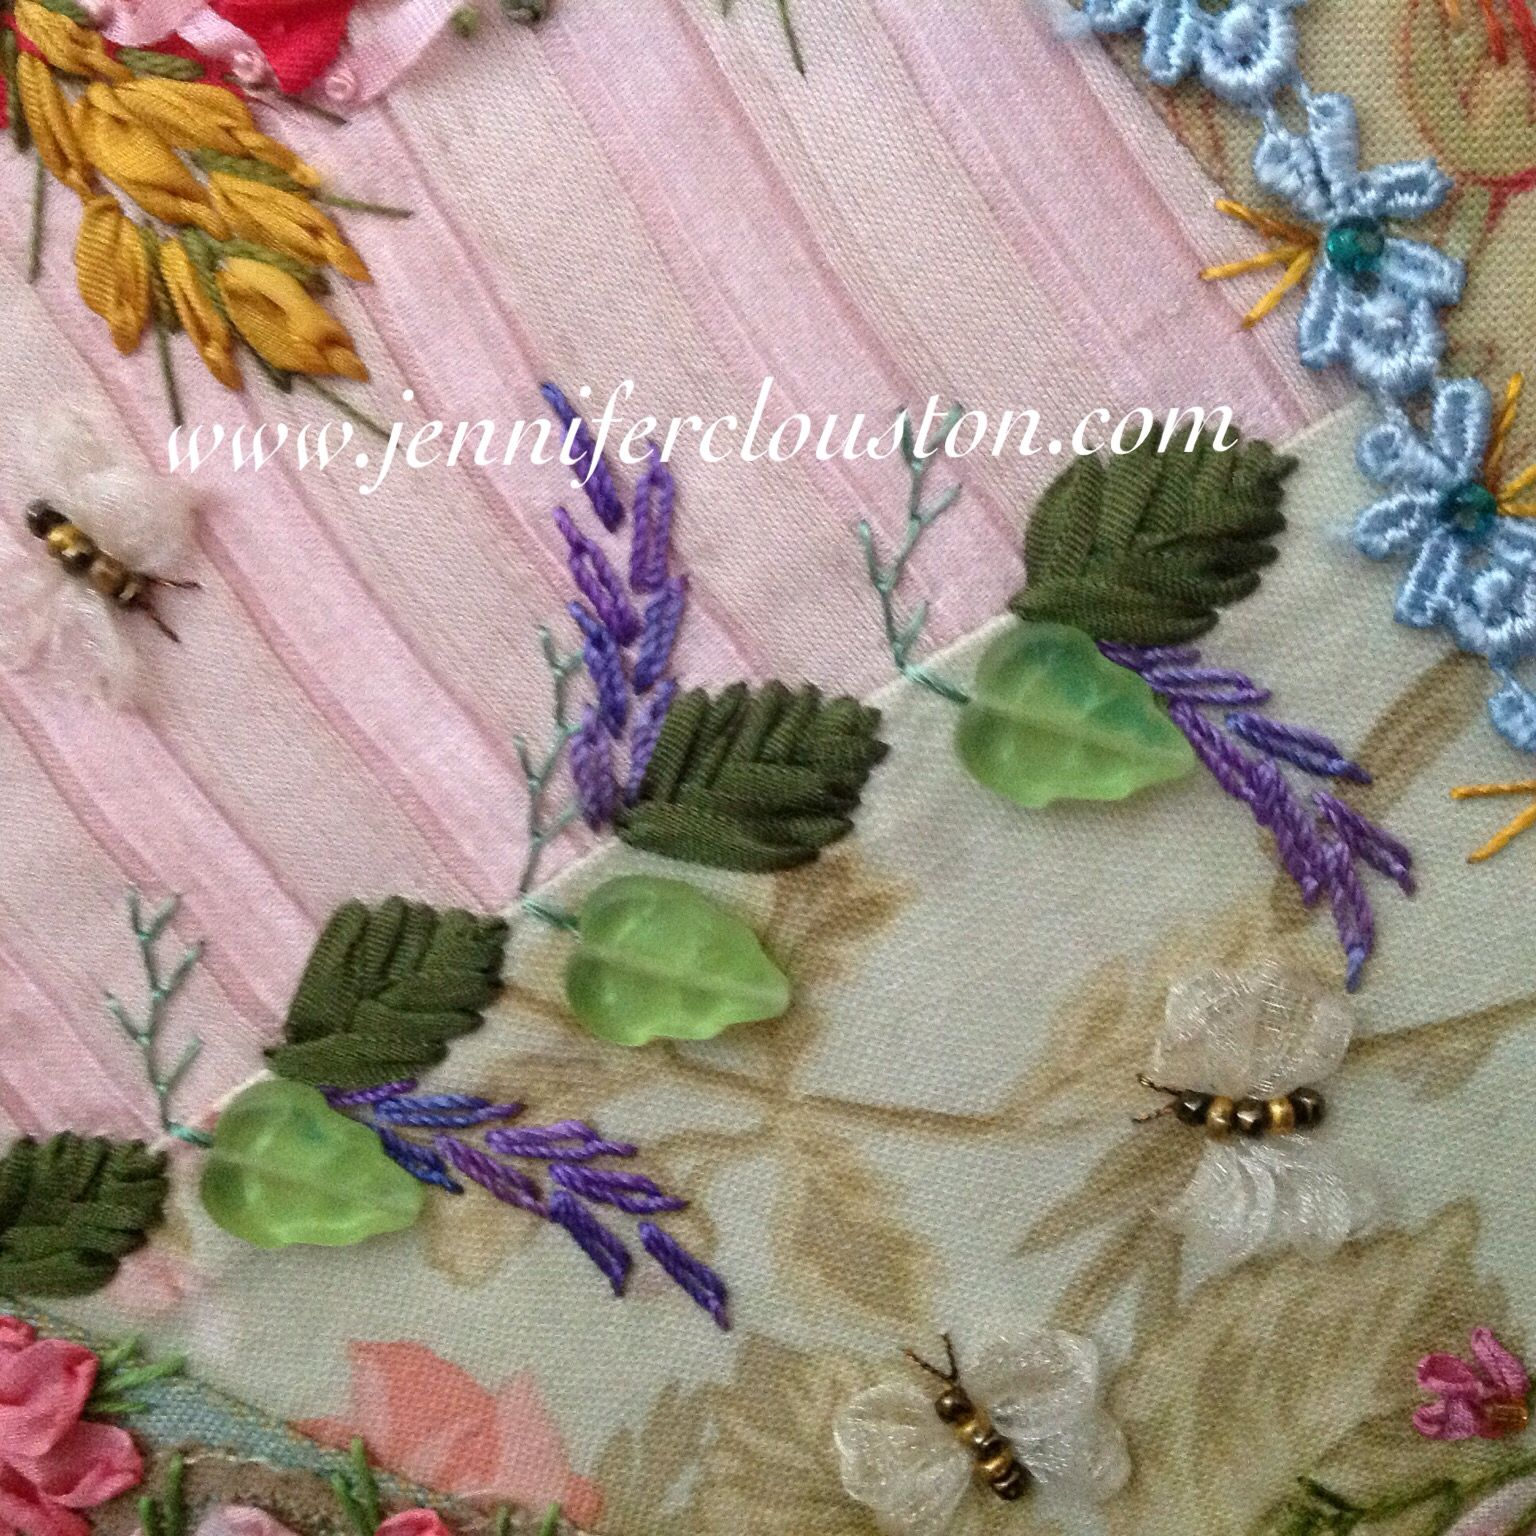 Crazy quilting, Jennifer Clouston, embroidery, silk ribbon embroidery, sewsocrazy, beading, crazy patchwork